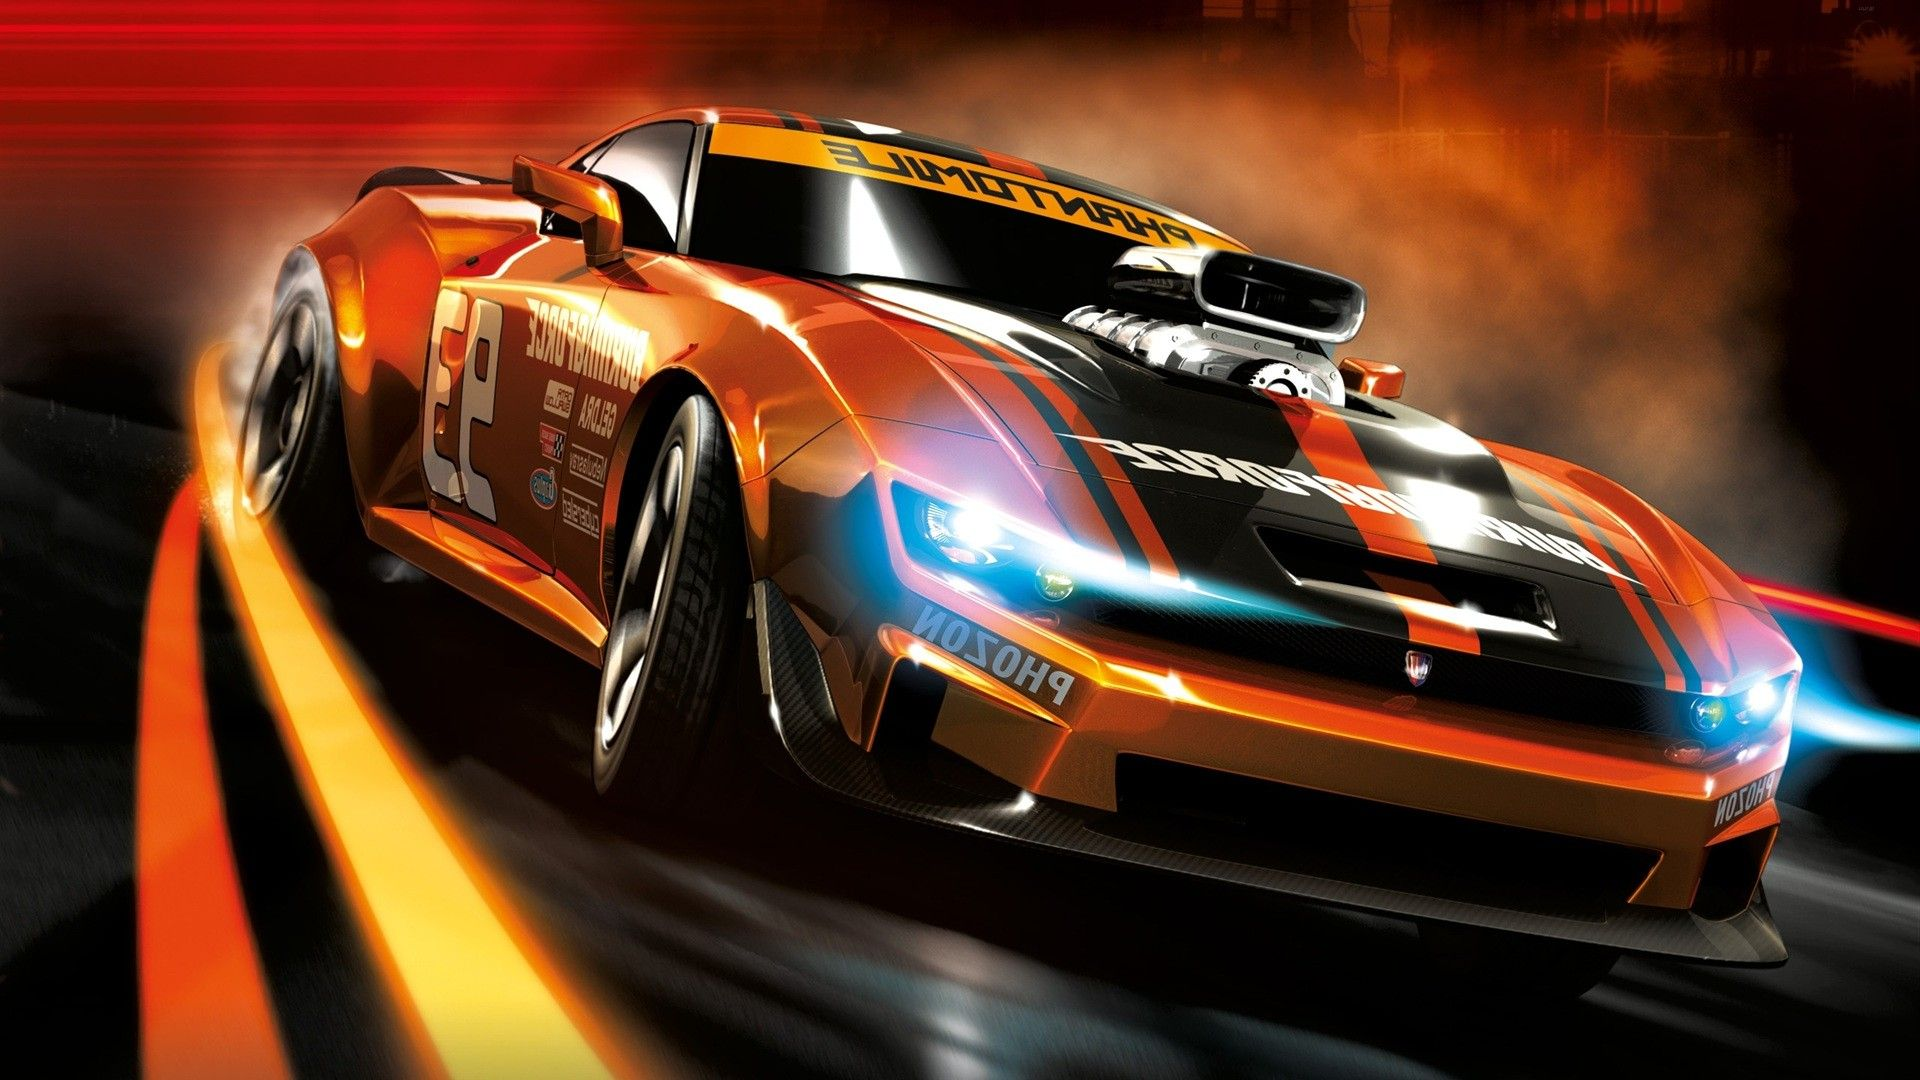 Cool Car Background Wallpapers Wallpapers Backgrounds Images - Boys car wallpaper designs